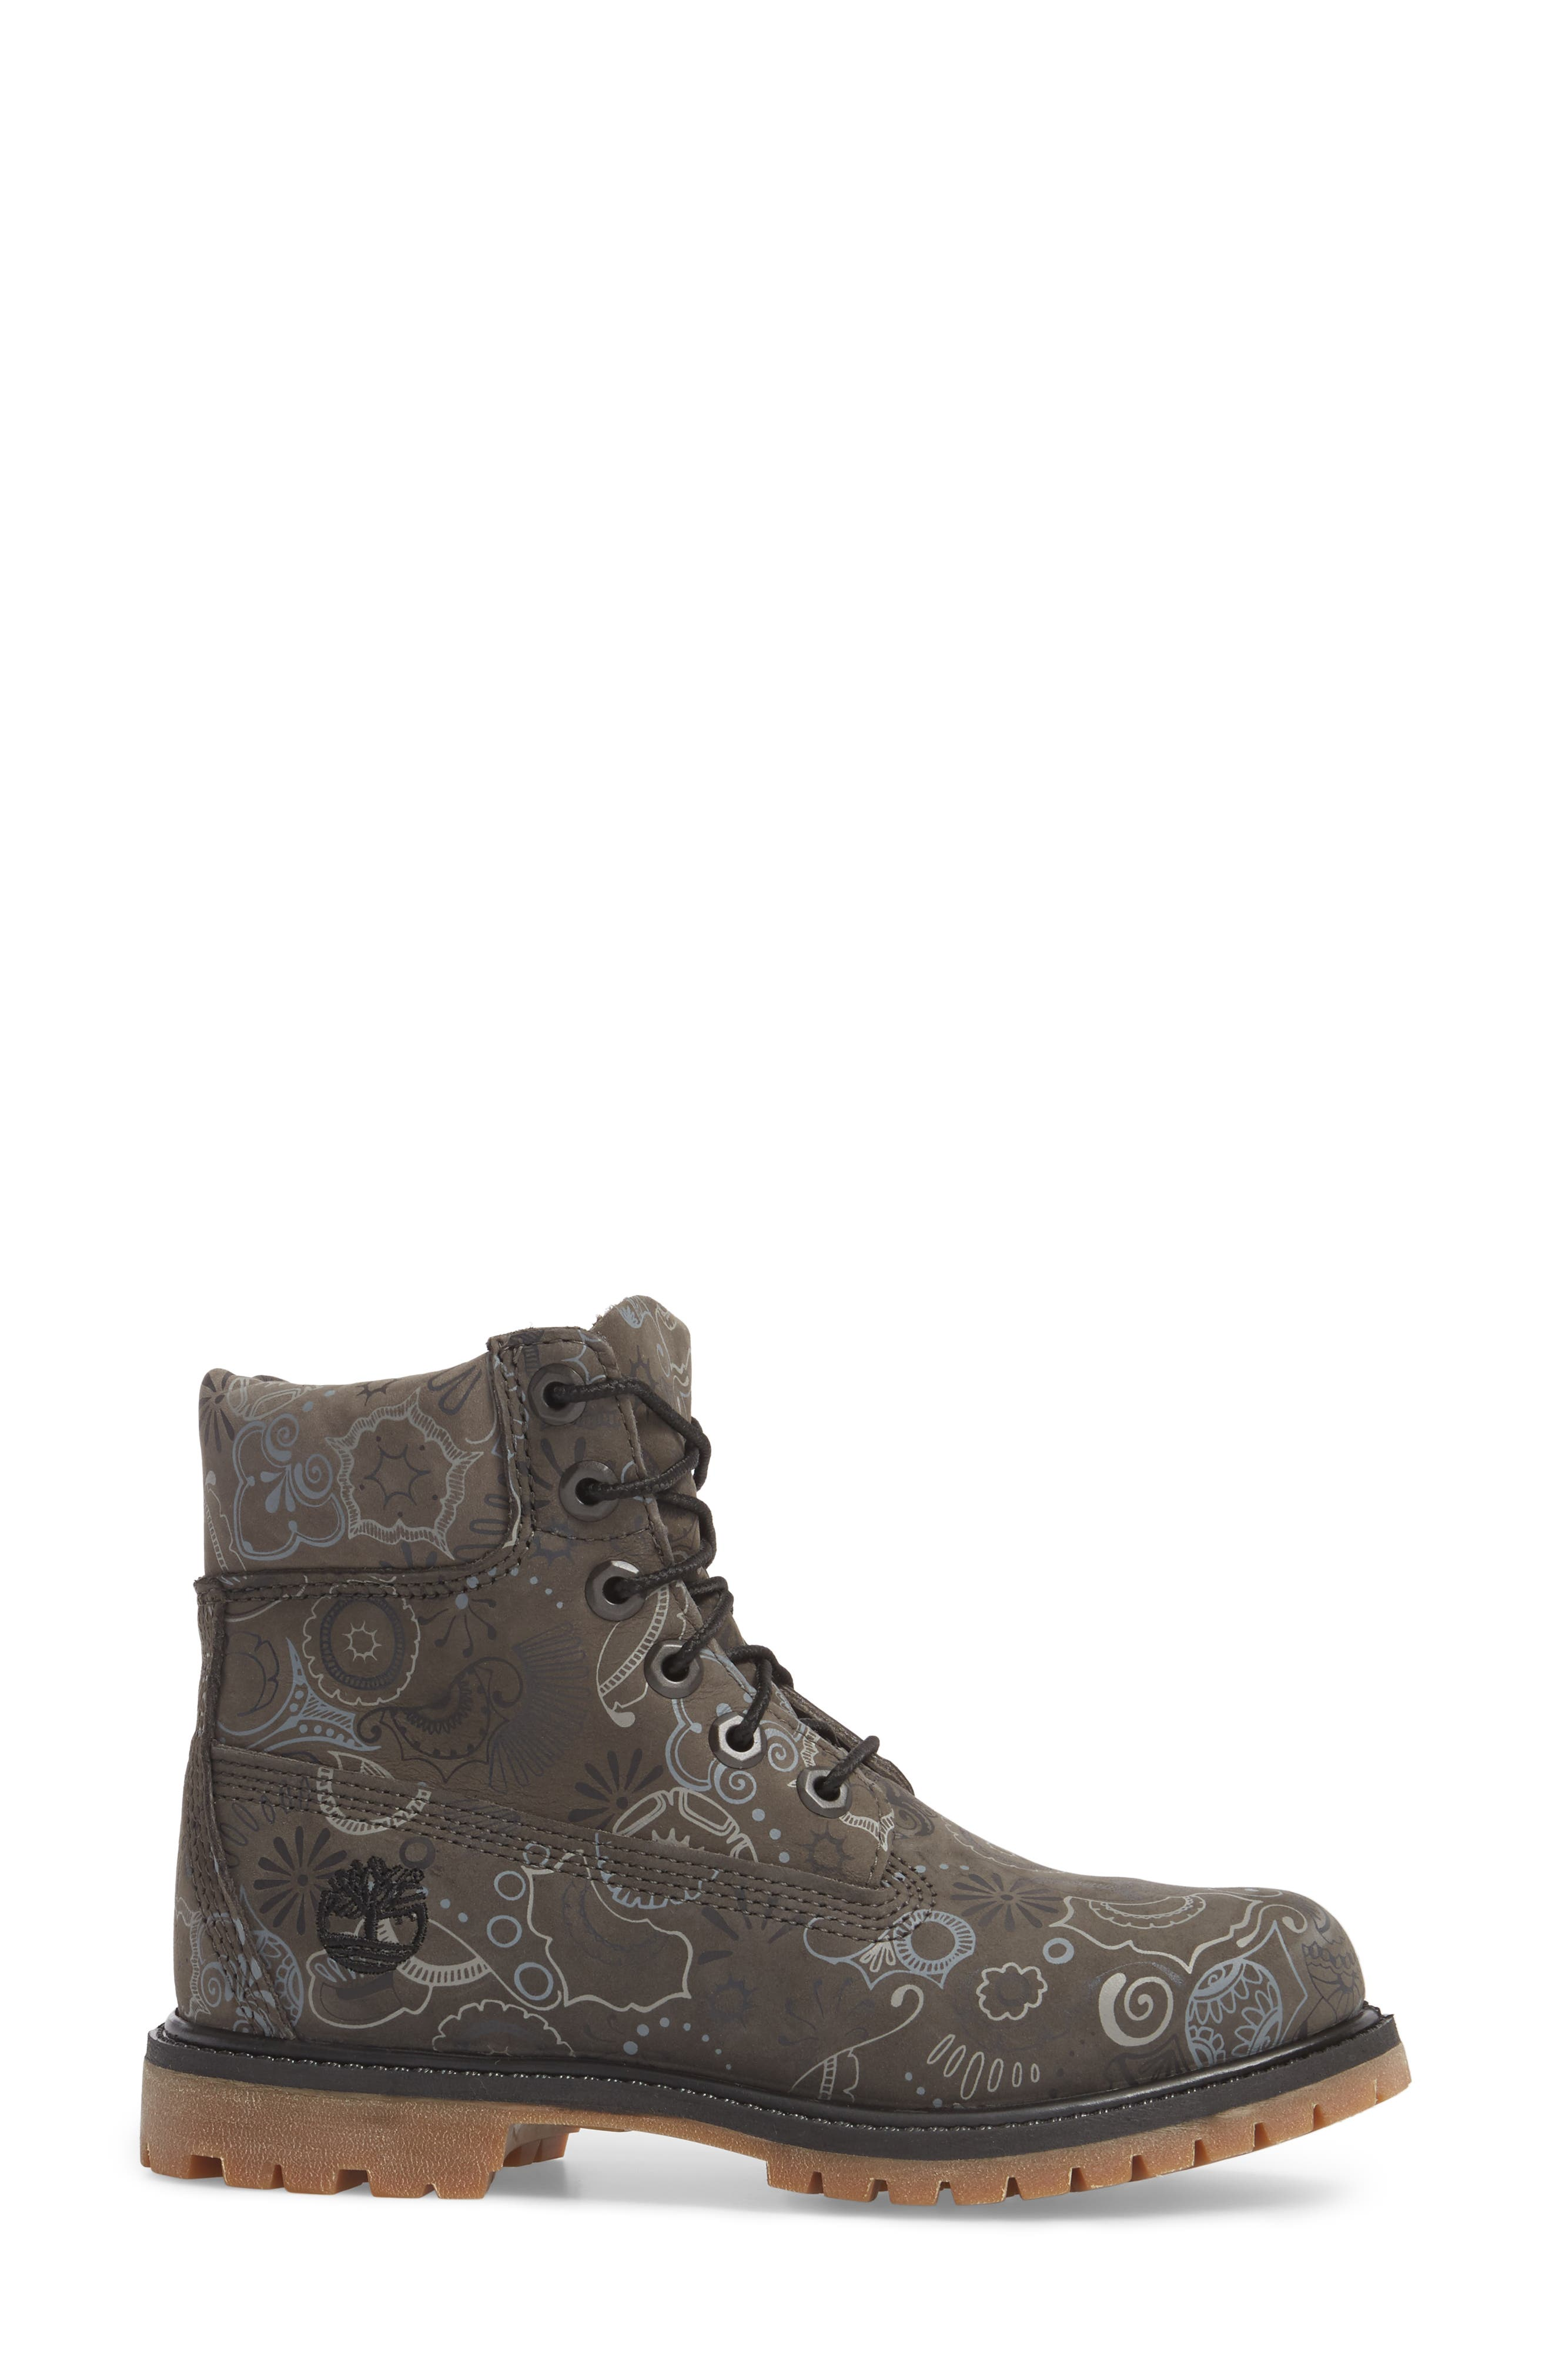 Henna Premium Boot,                             Alternate thumbnail 3, color,                             Tornado Nubuck Leather